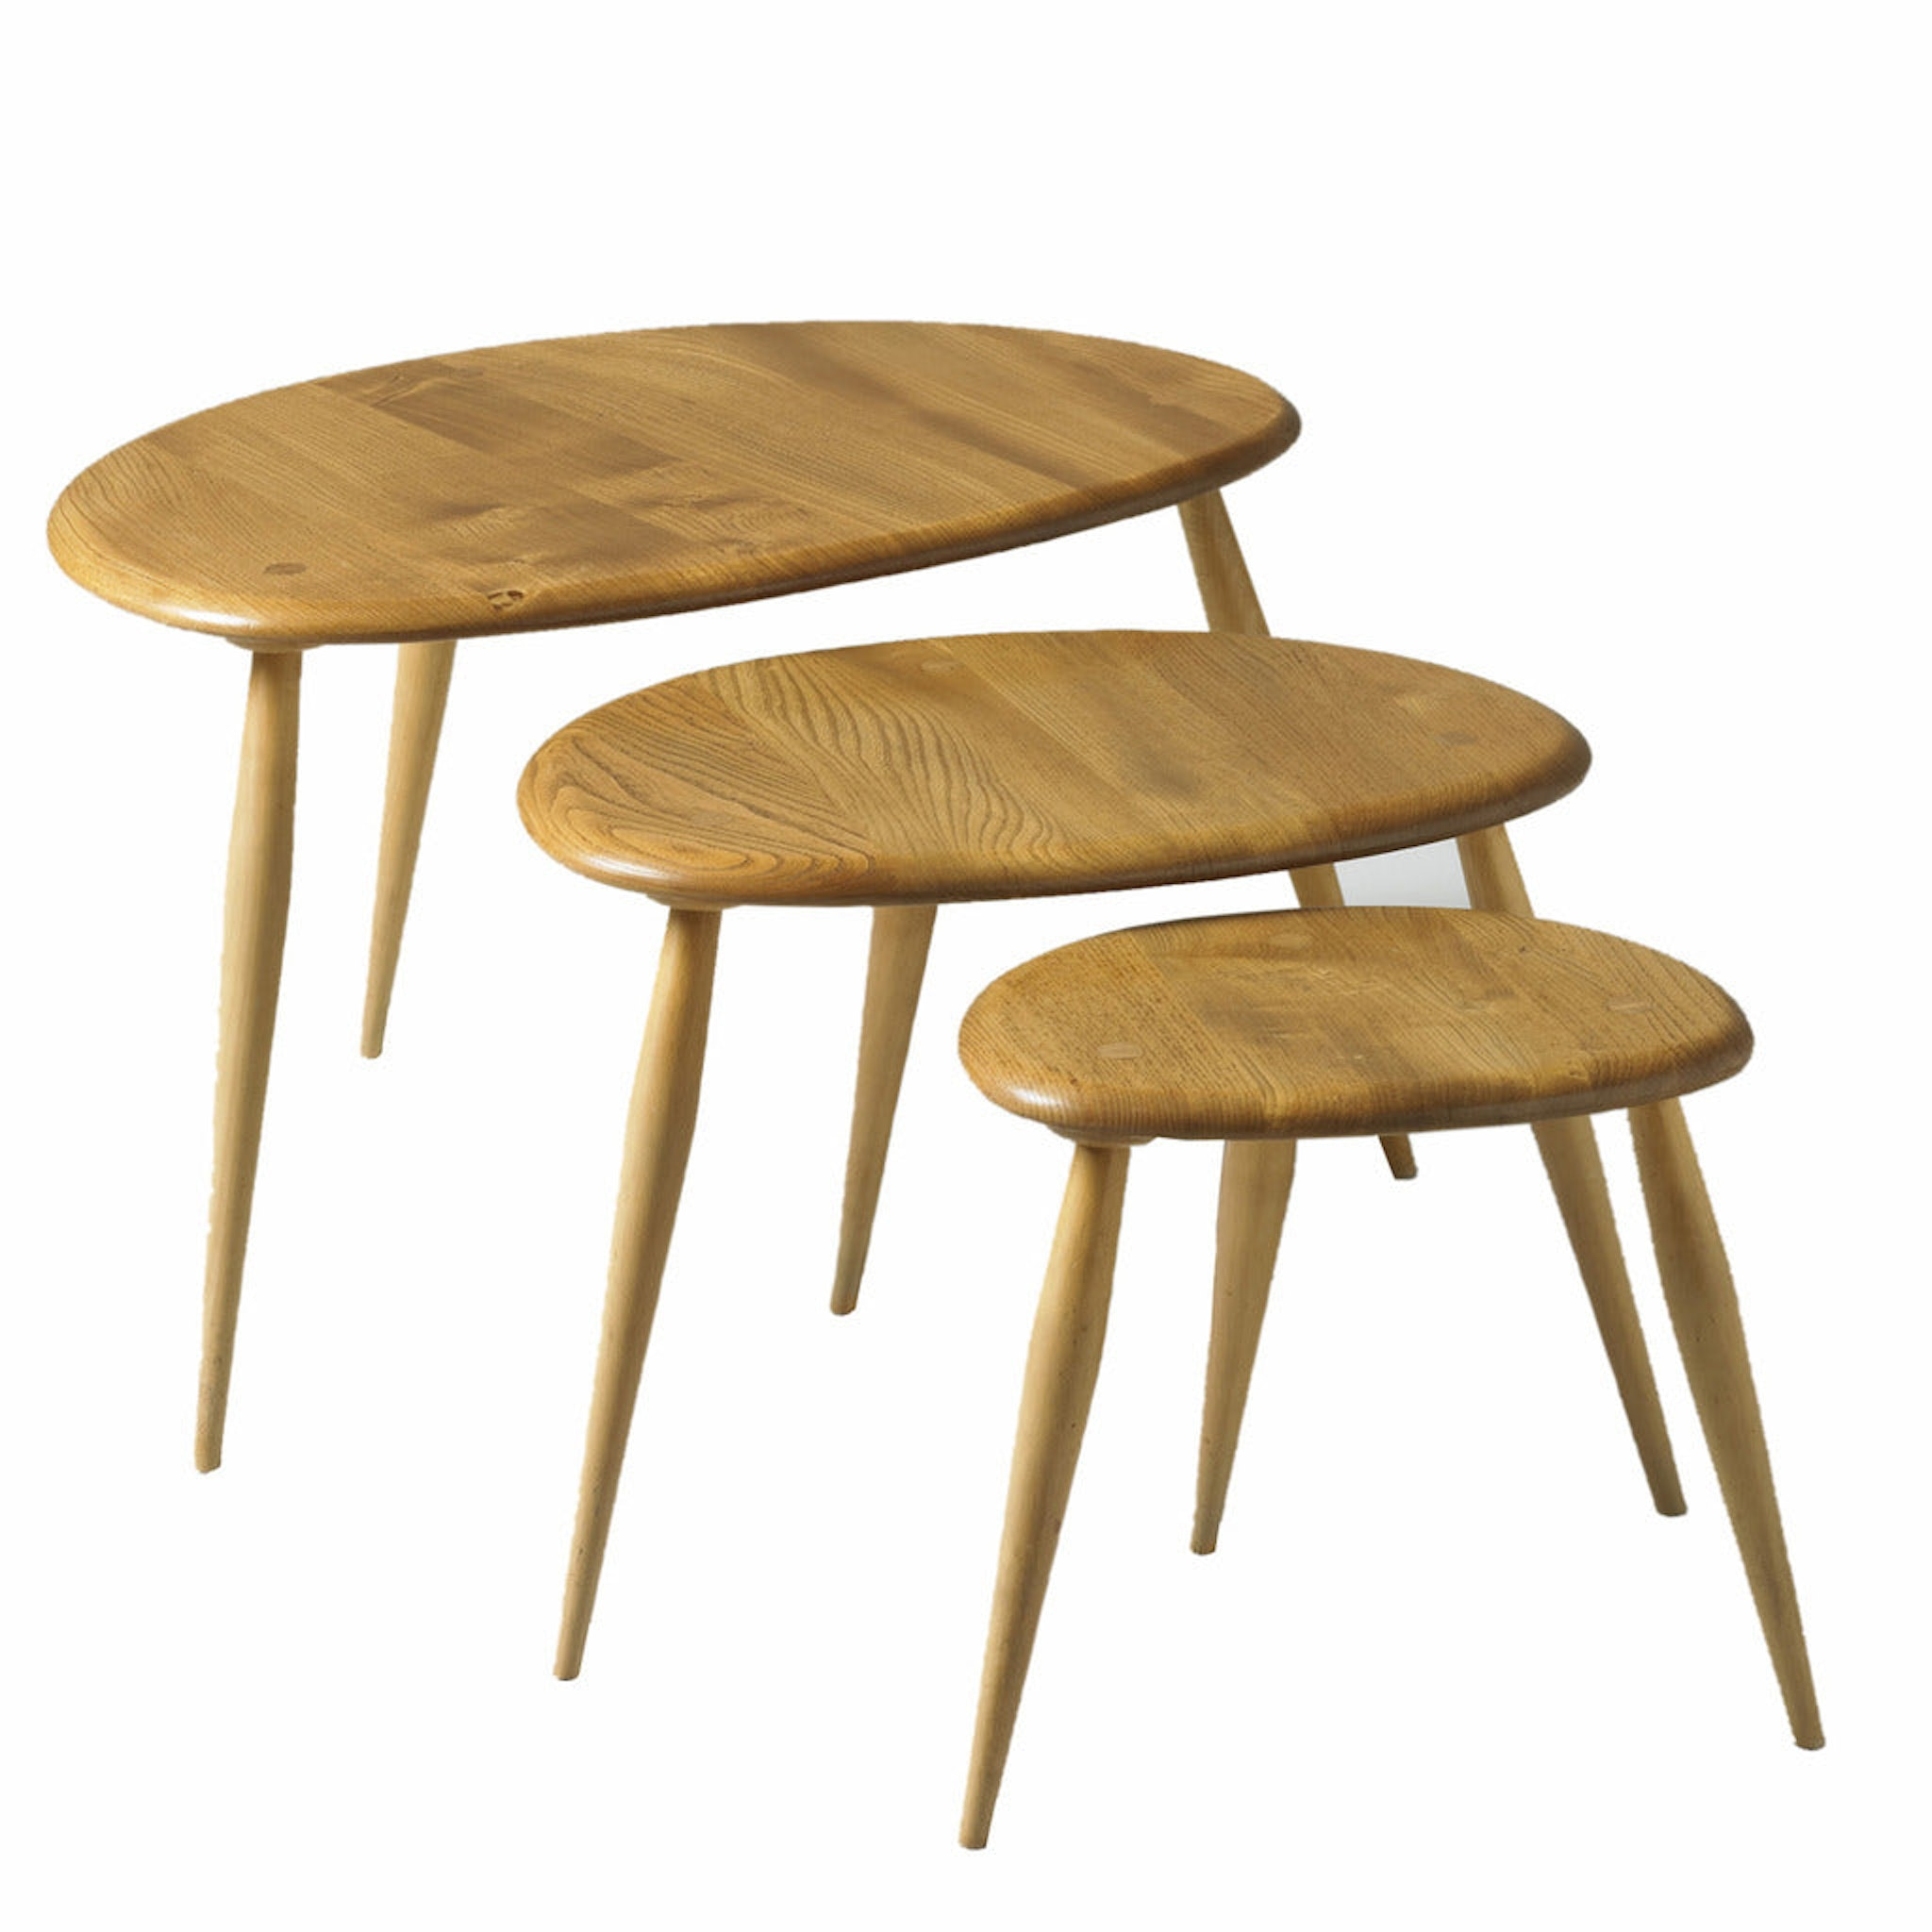 Nest of three Pebble Tables by Ercol